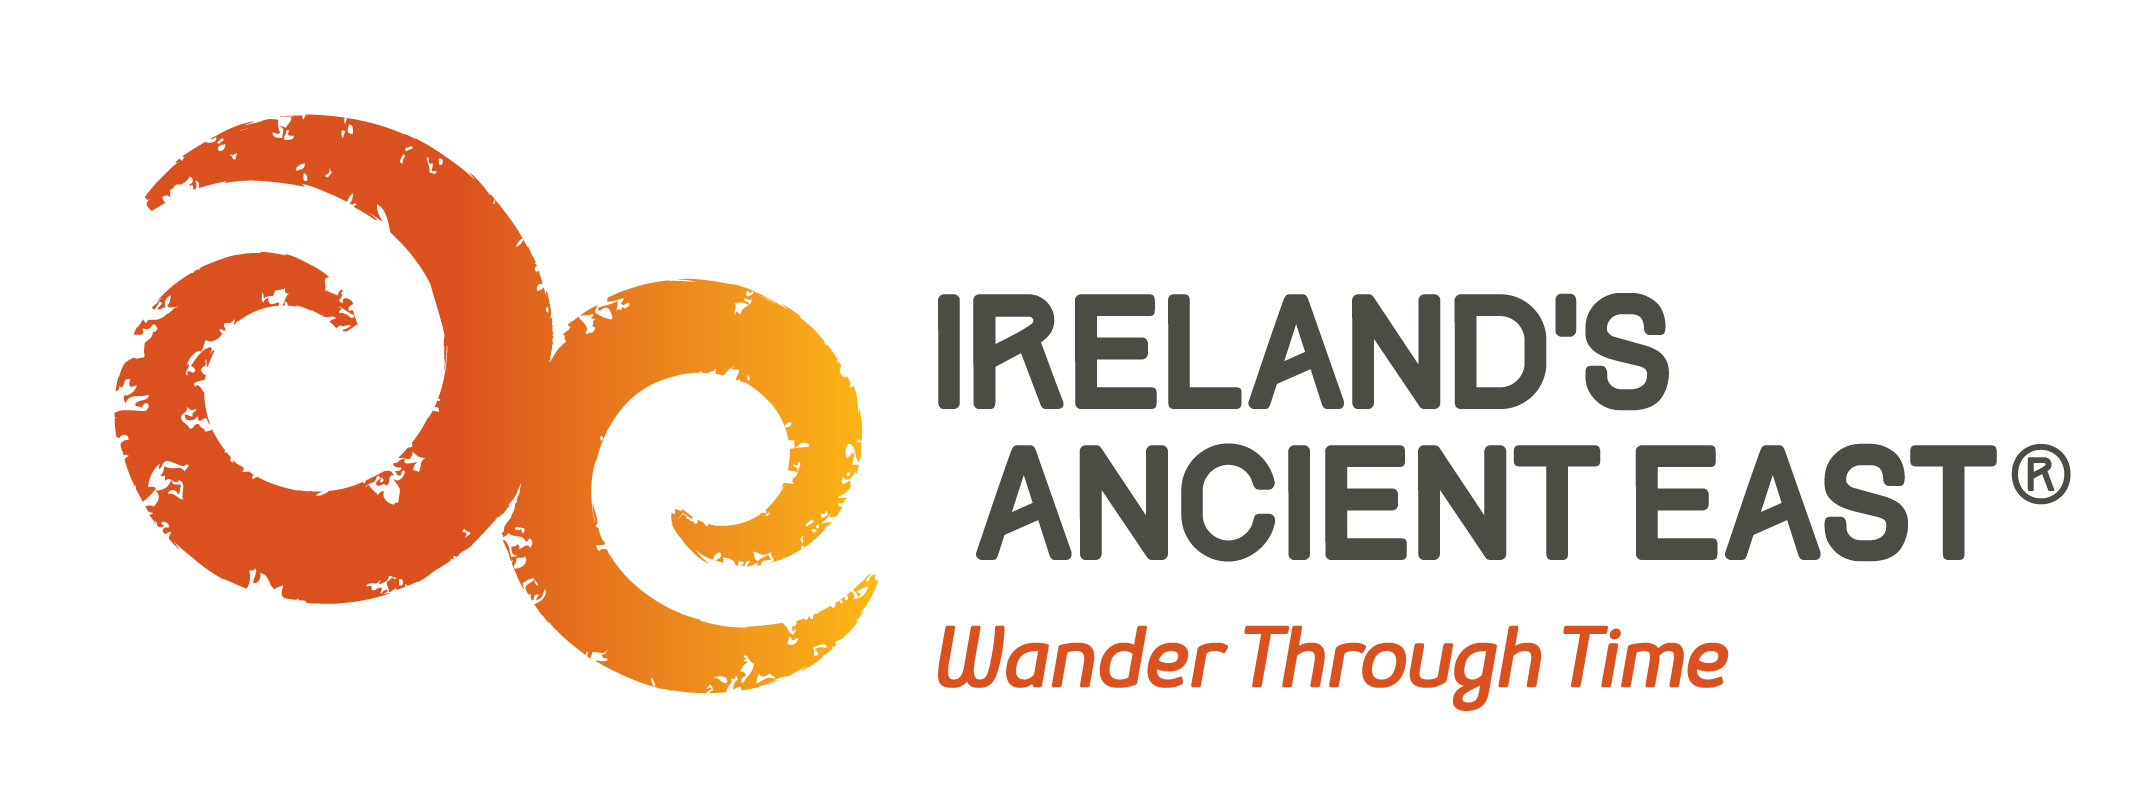 Irelands Ancient East Logo.jpg